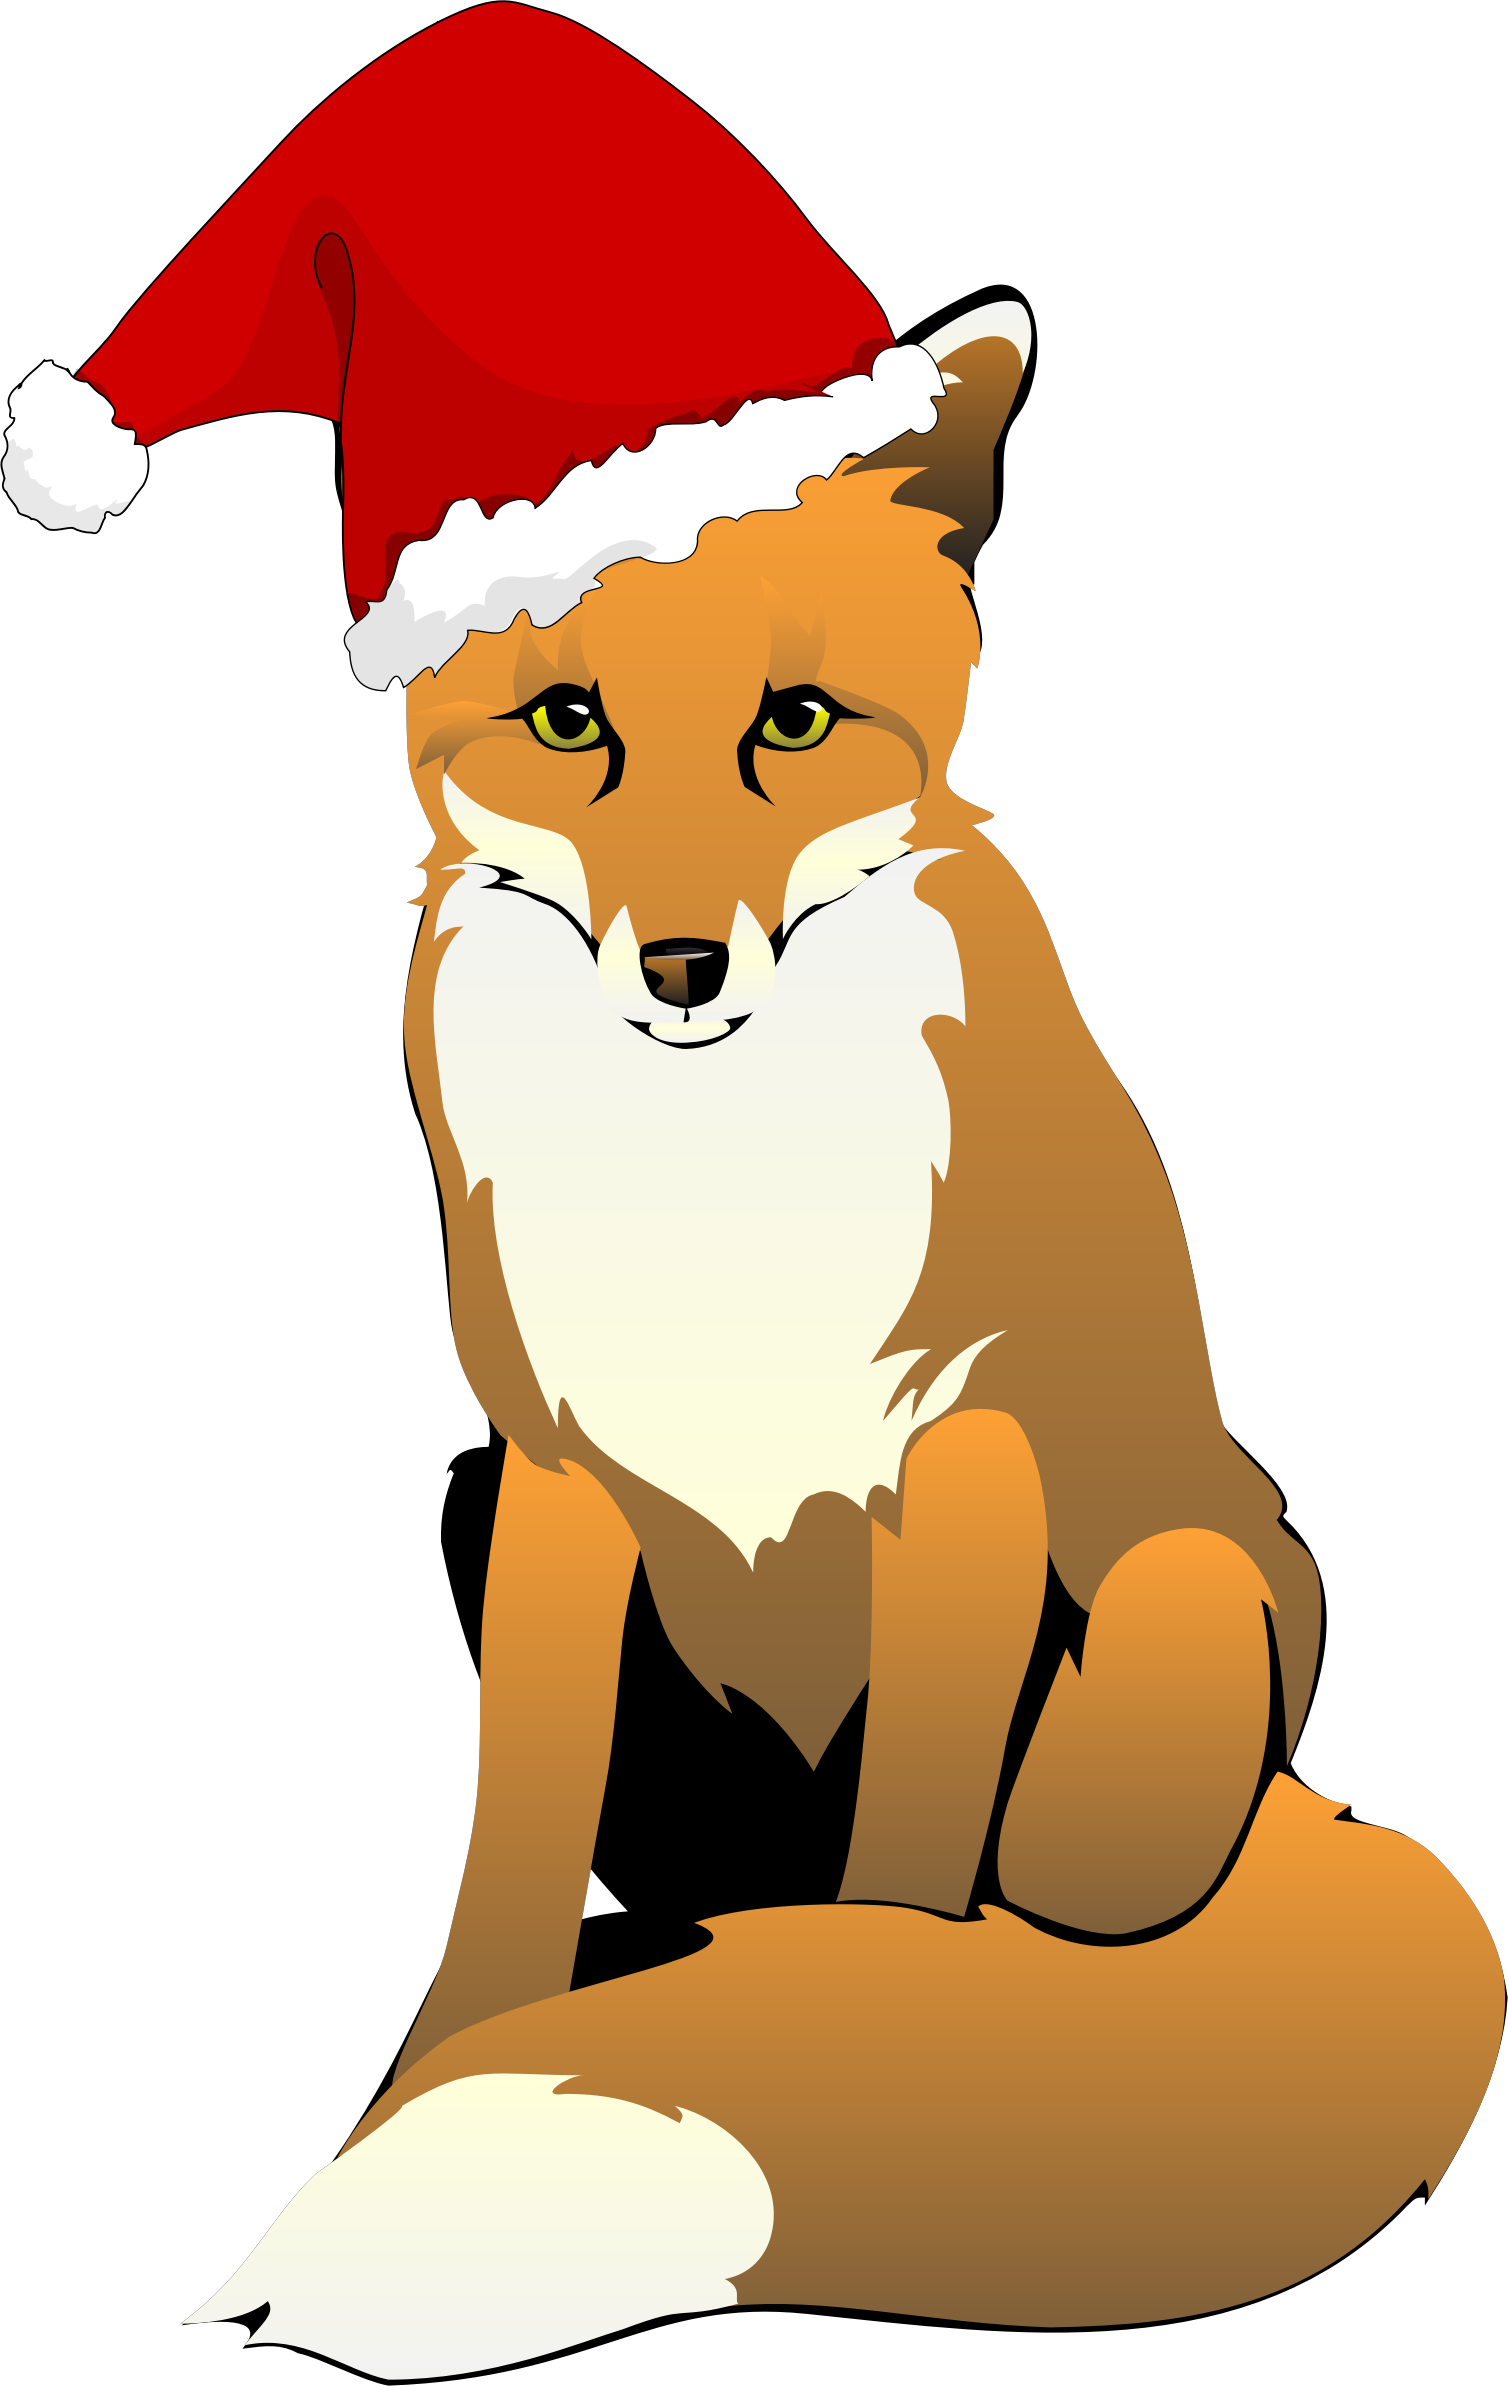 Fox cartoon png. Wearing santa hat icons